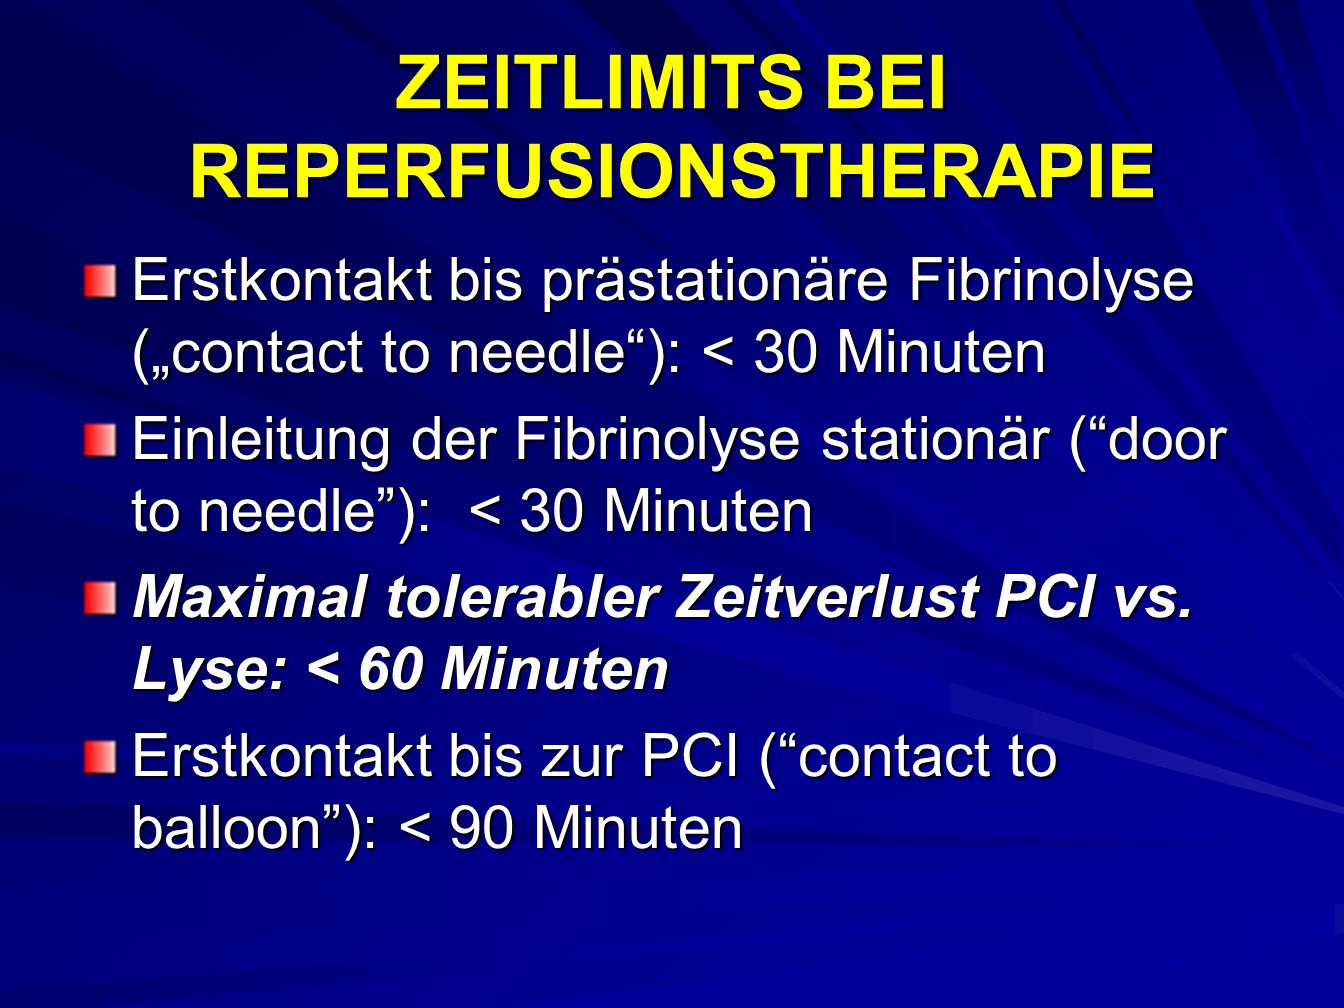 ZEITLIMITS BEI REPERFUSIONSTHERAPIE